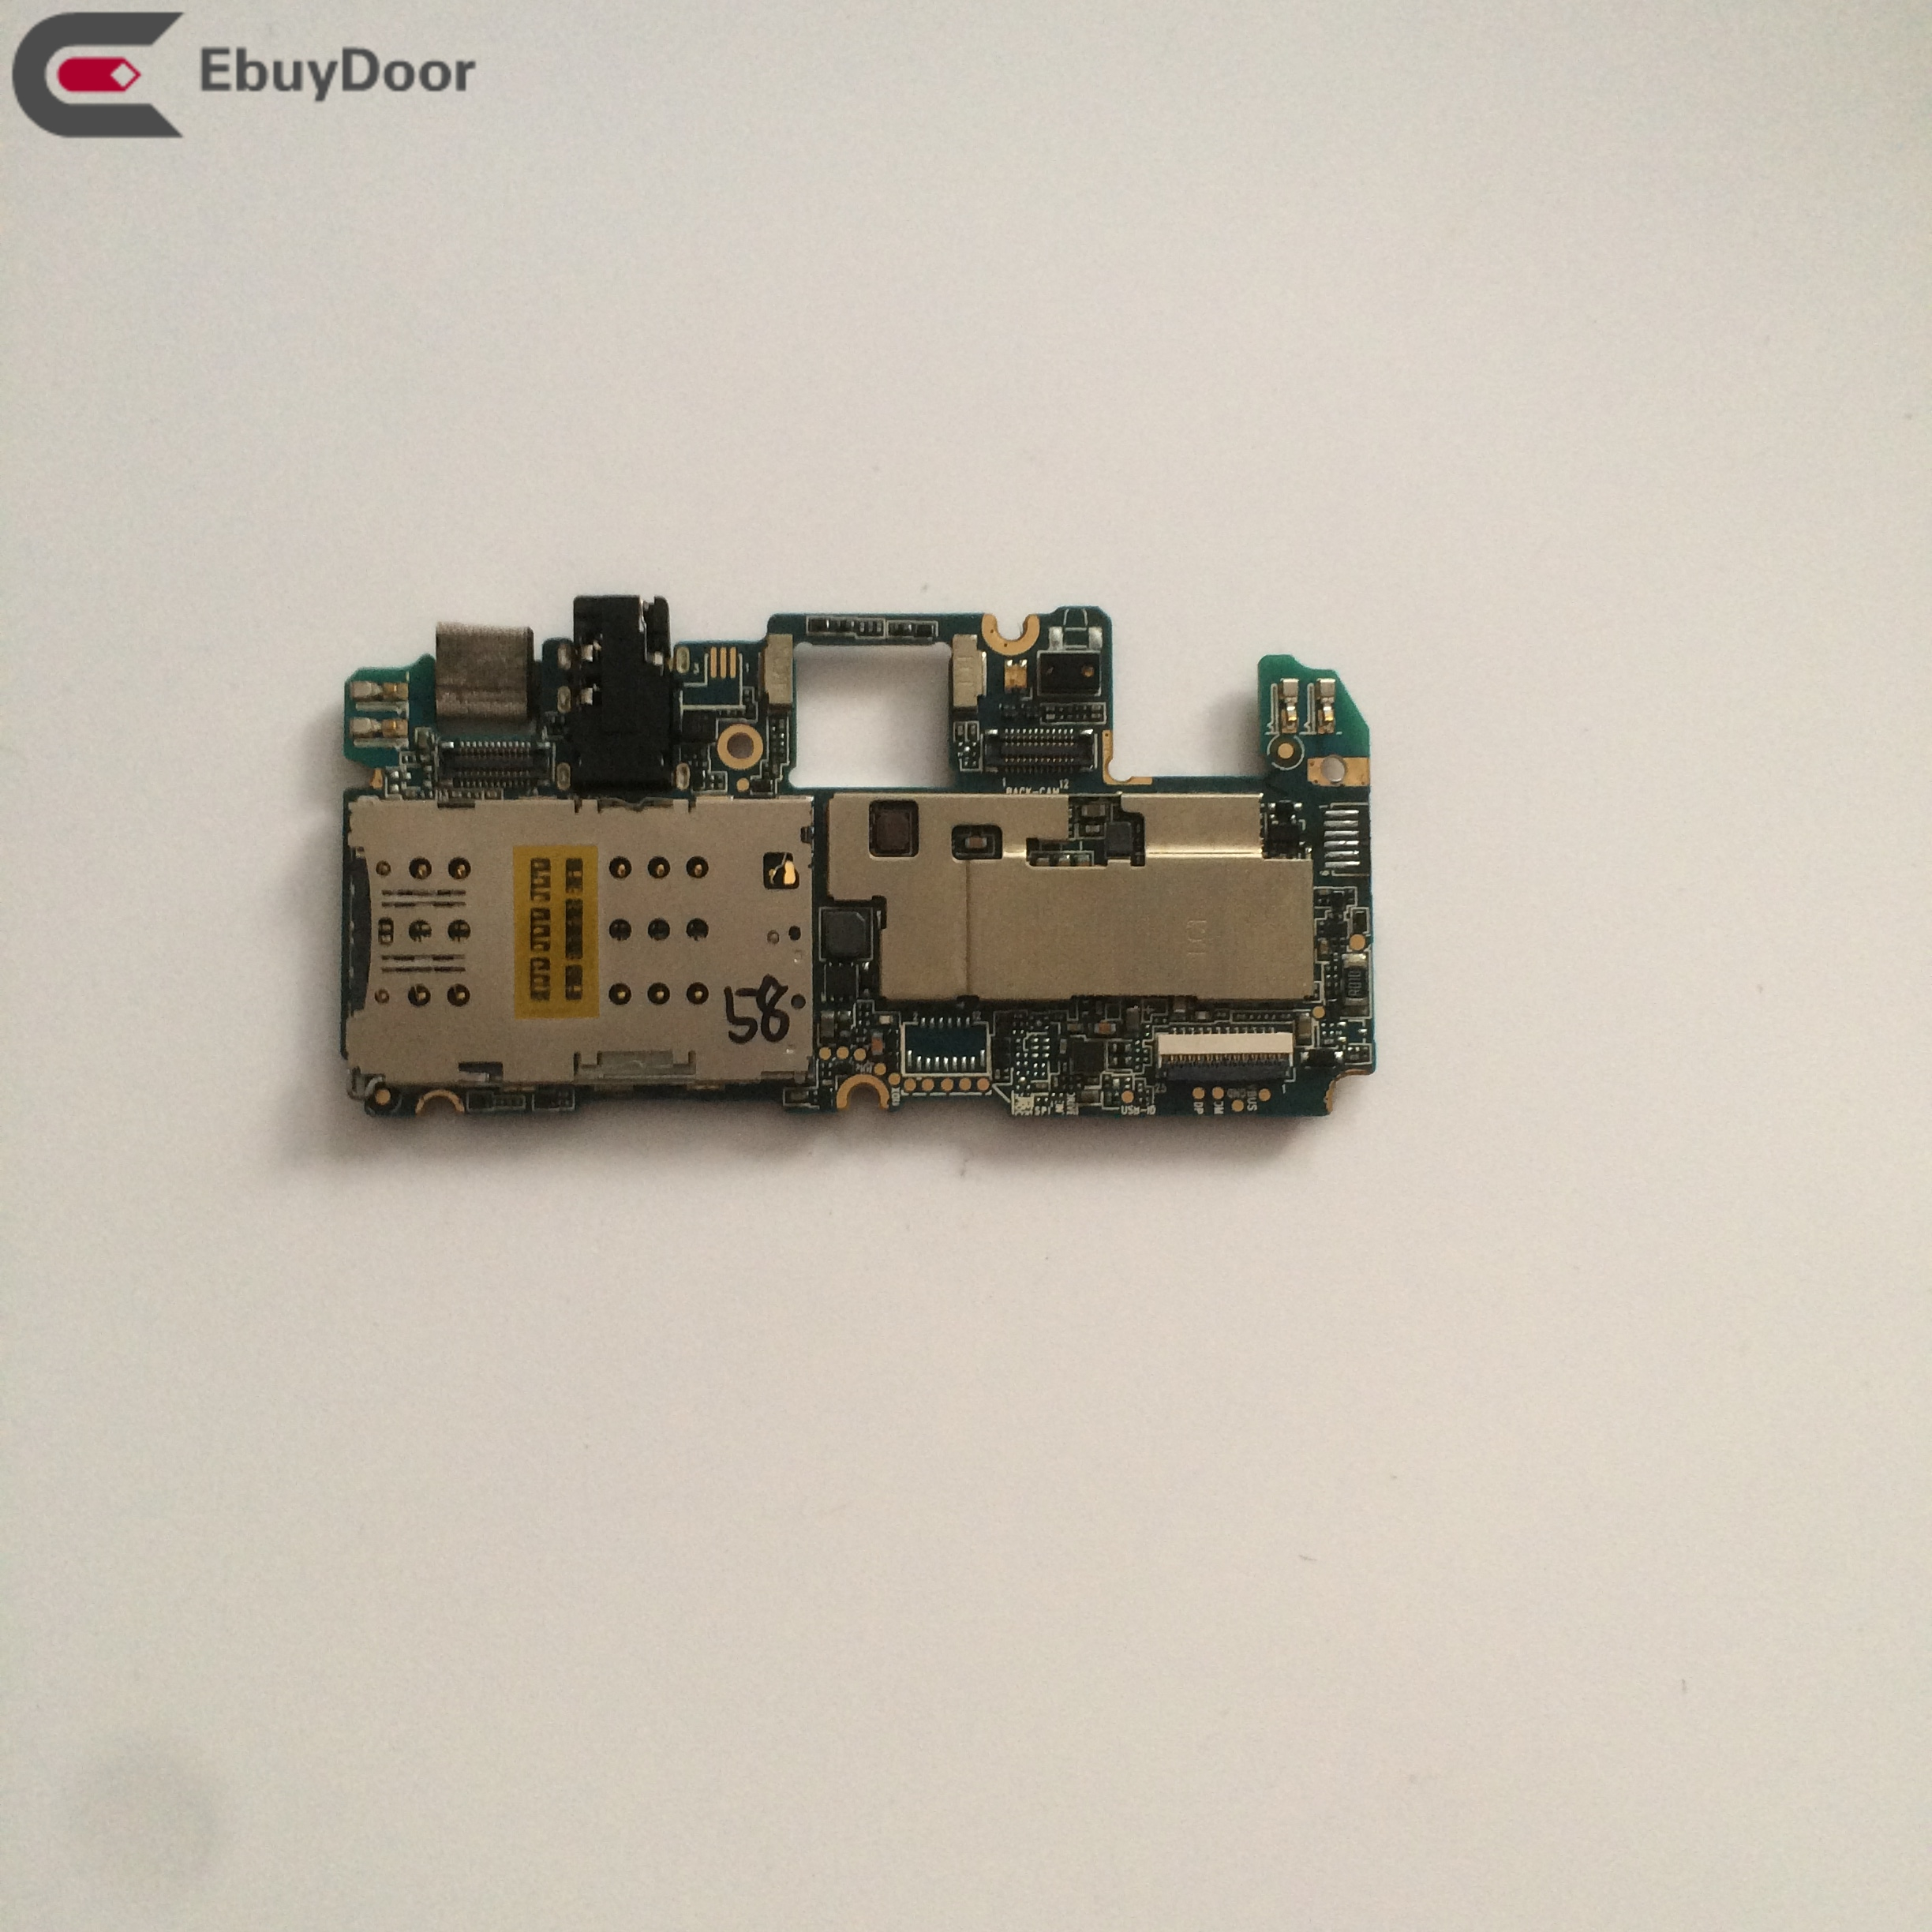 Used Have Lock Need Brush Mainboard 2G RAM+16G ROM Motherboard For HOMTOM HT6 MT6735 Quad Core 5.5Inch 1280x720 HD Free ShippingUsed Have Lock Need Brush Mainboard 2G RAM+16G ROM Motherboard For HOMTOM HT6 MT6735 Quad Core 5.5Inch 1280x720 HD Free Shipping